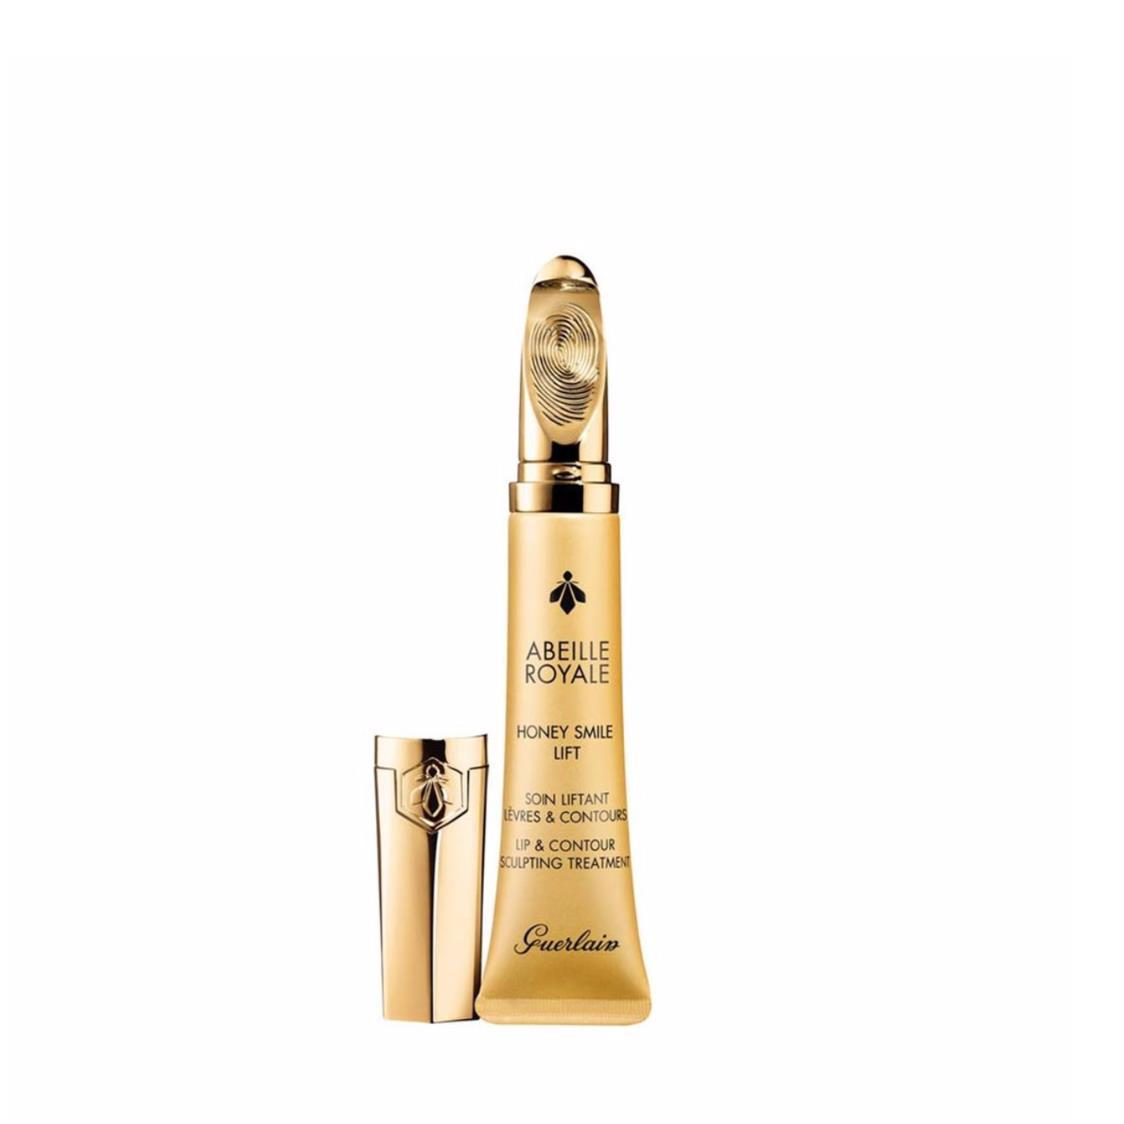 Abeille Royale Honey Smile Lift 15ml